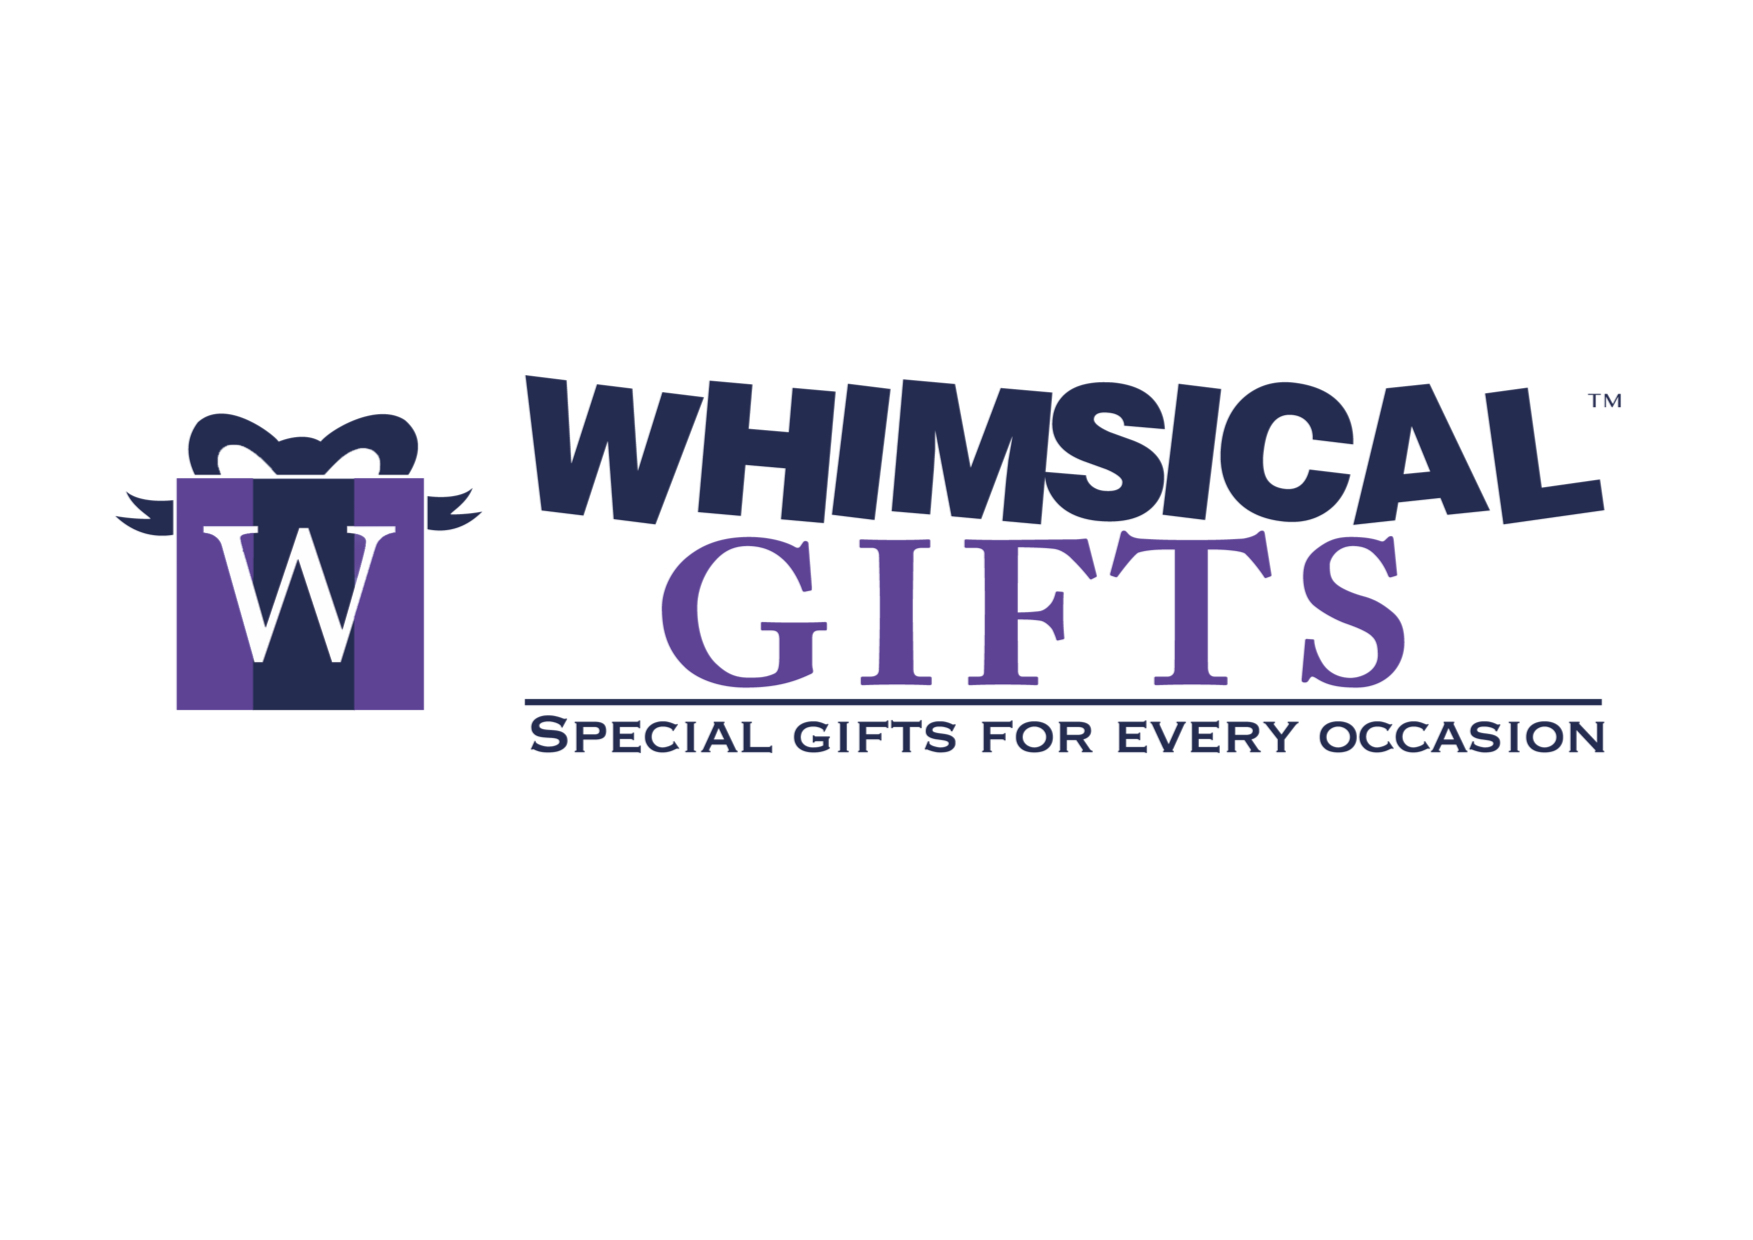 Whimsical Gifts